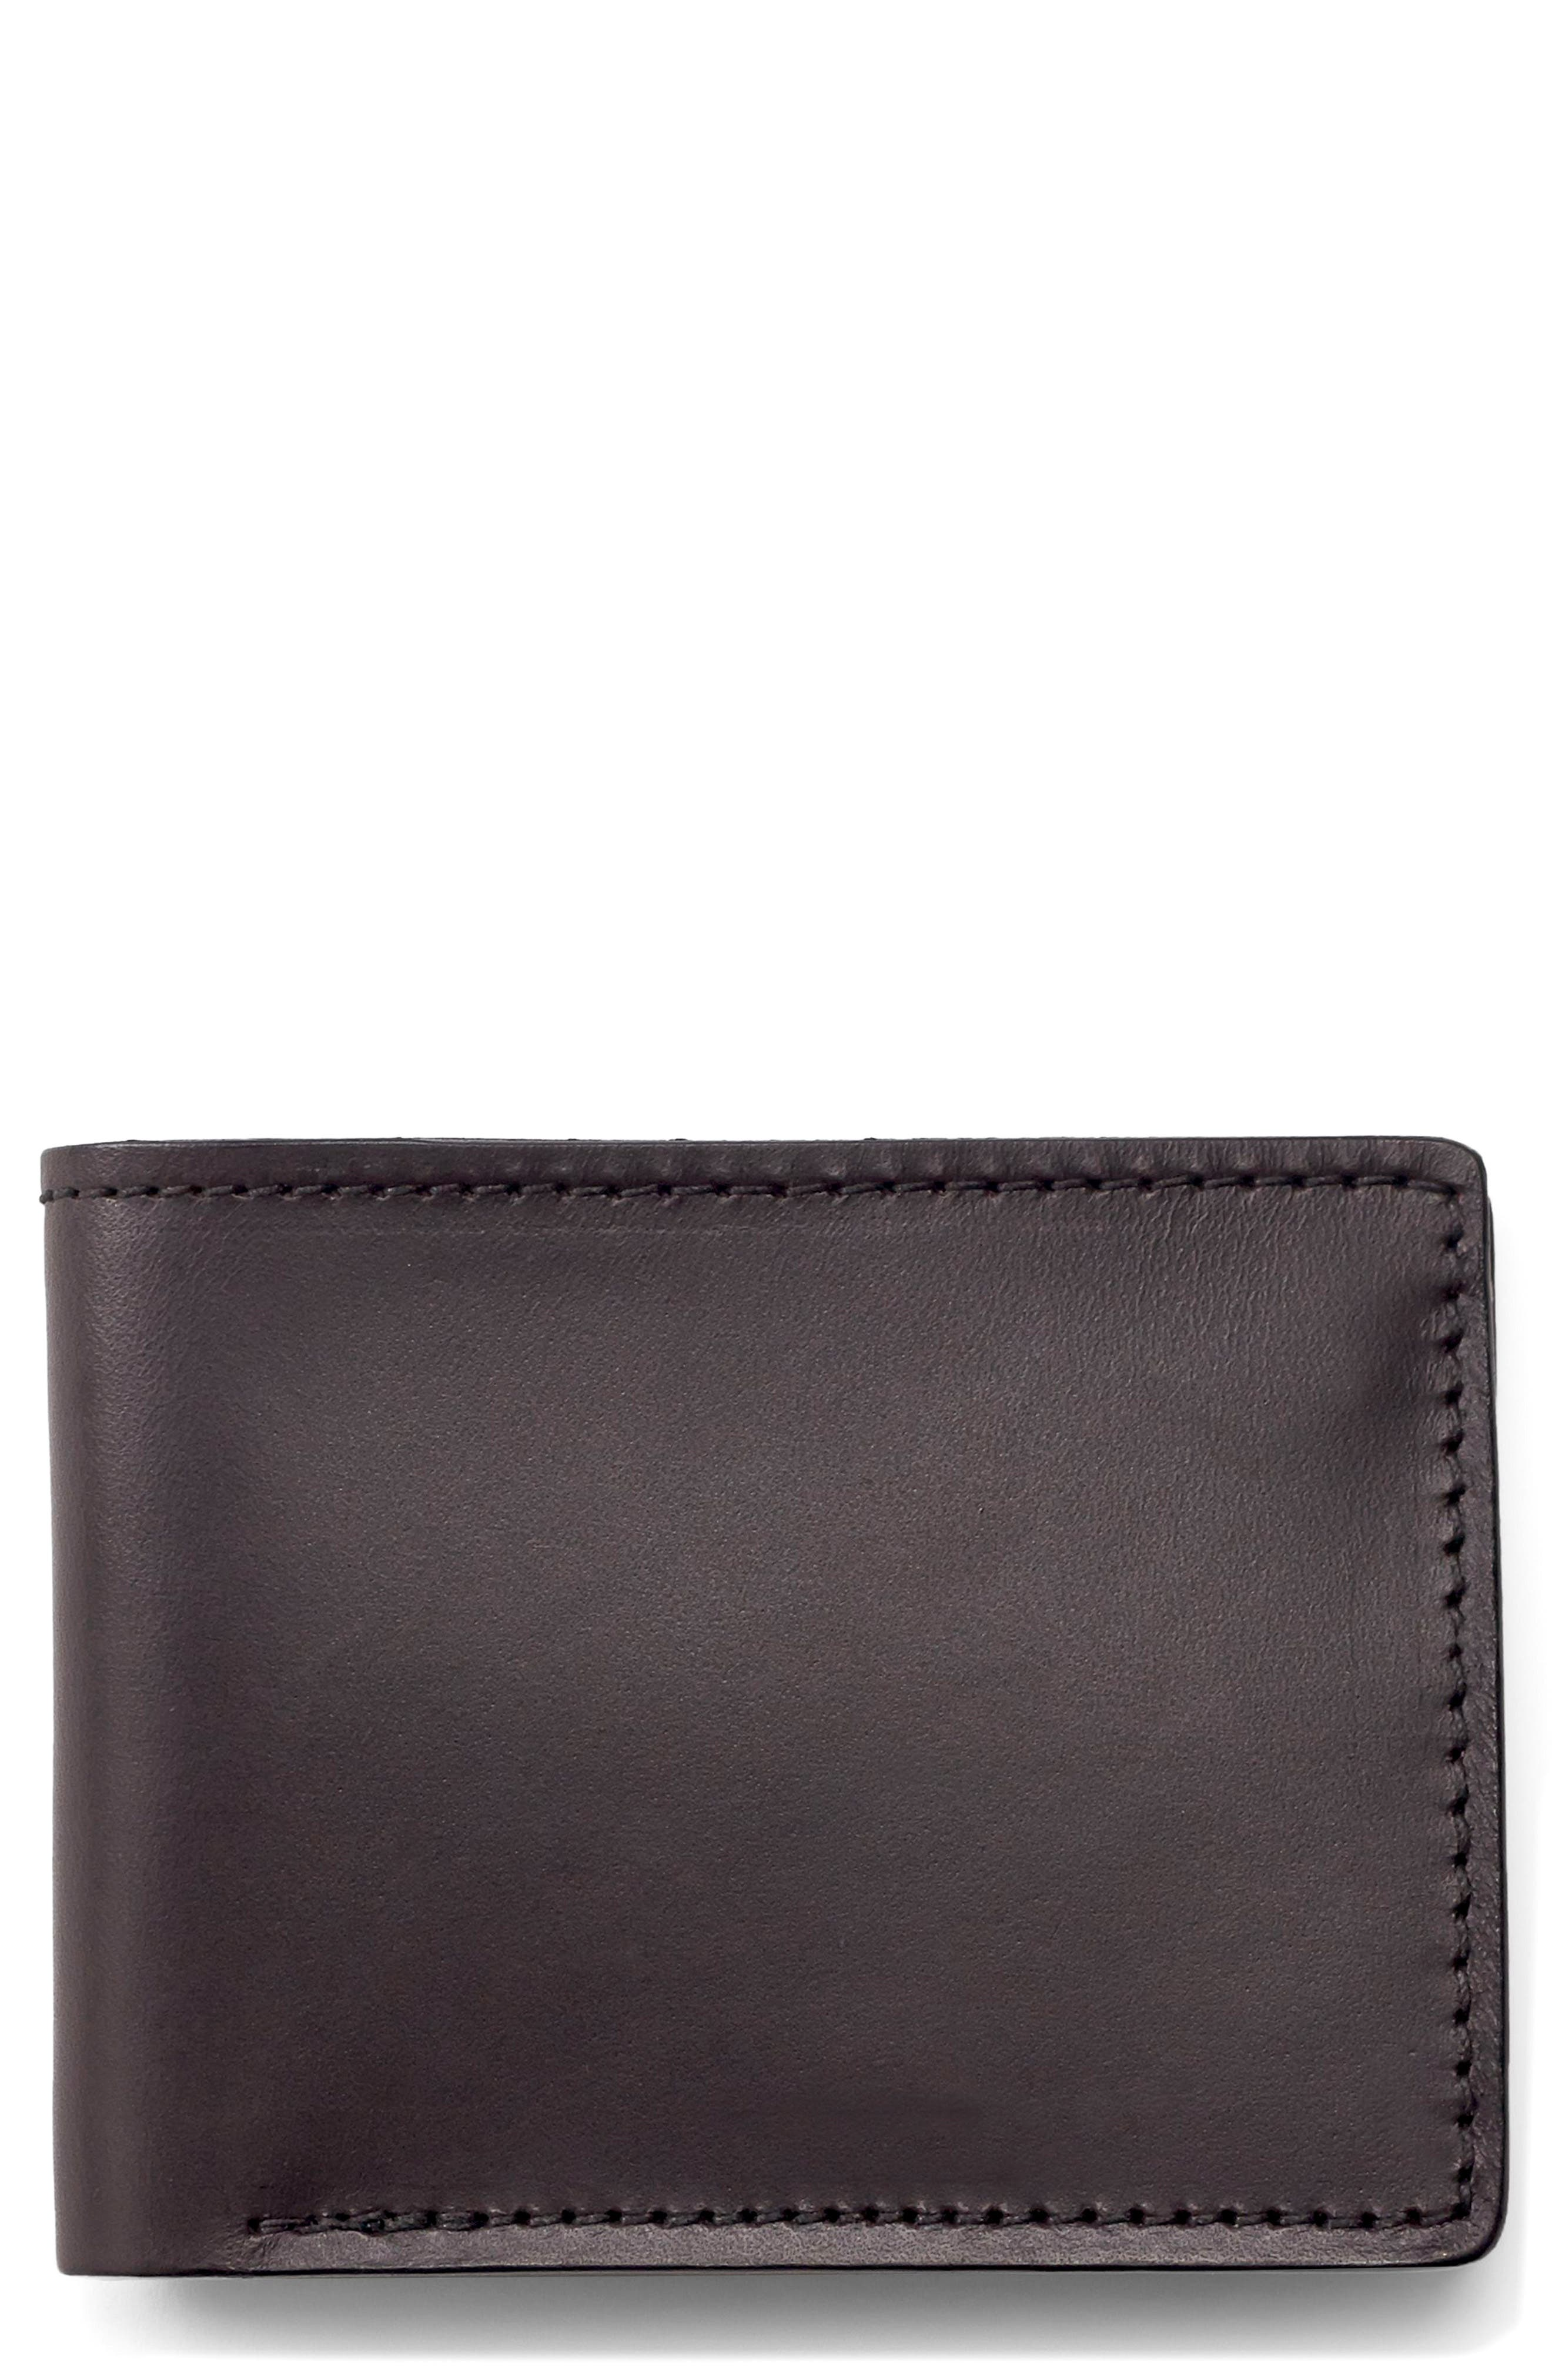 Leather Bifold Leather Wallet,                             Main thumbnail 1, color,                             BROWN